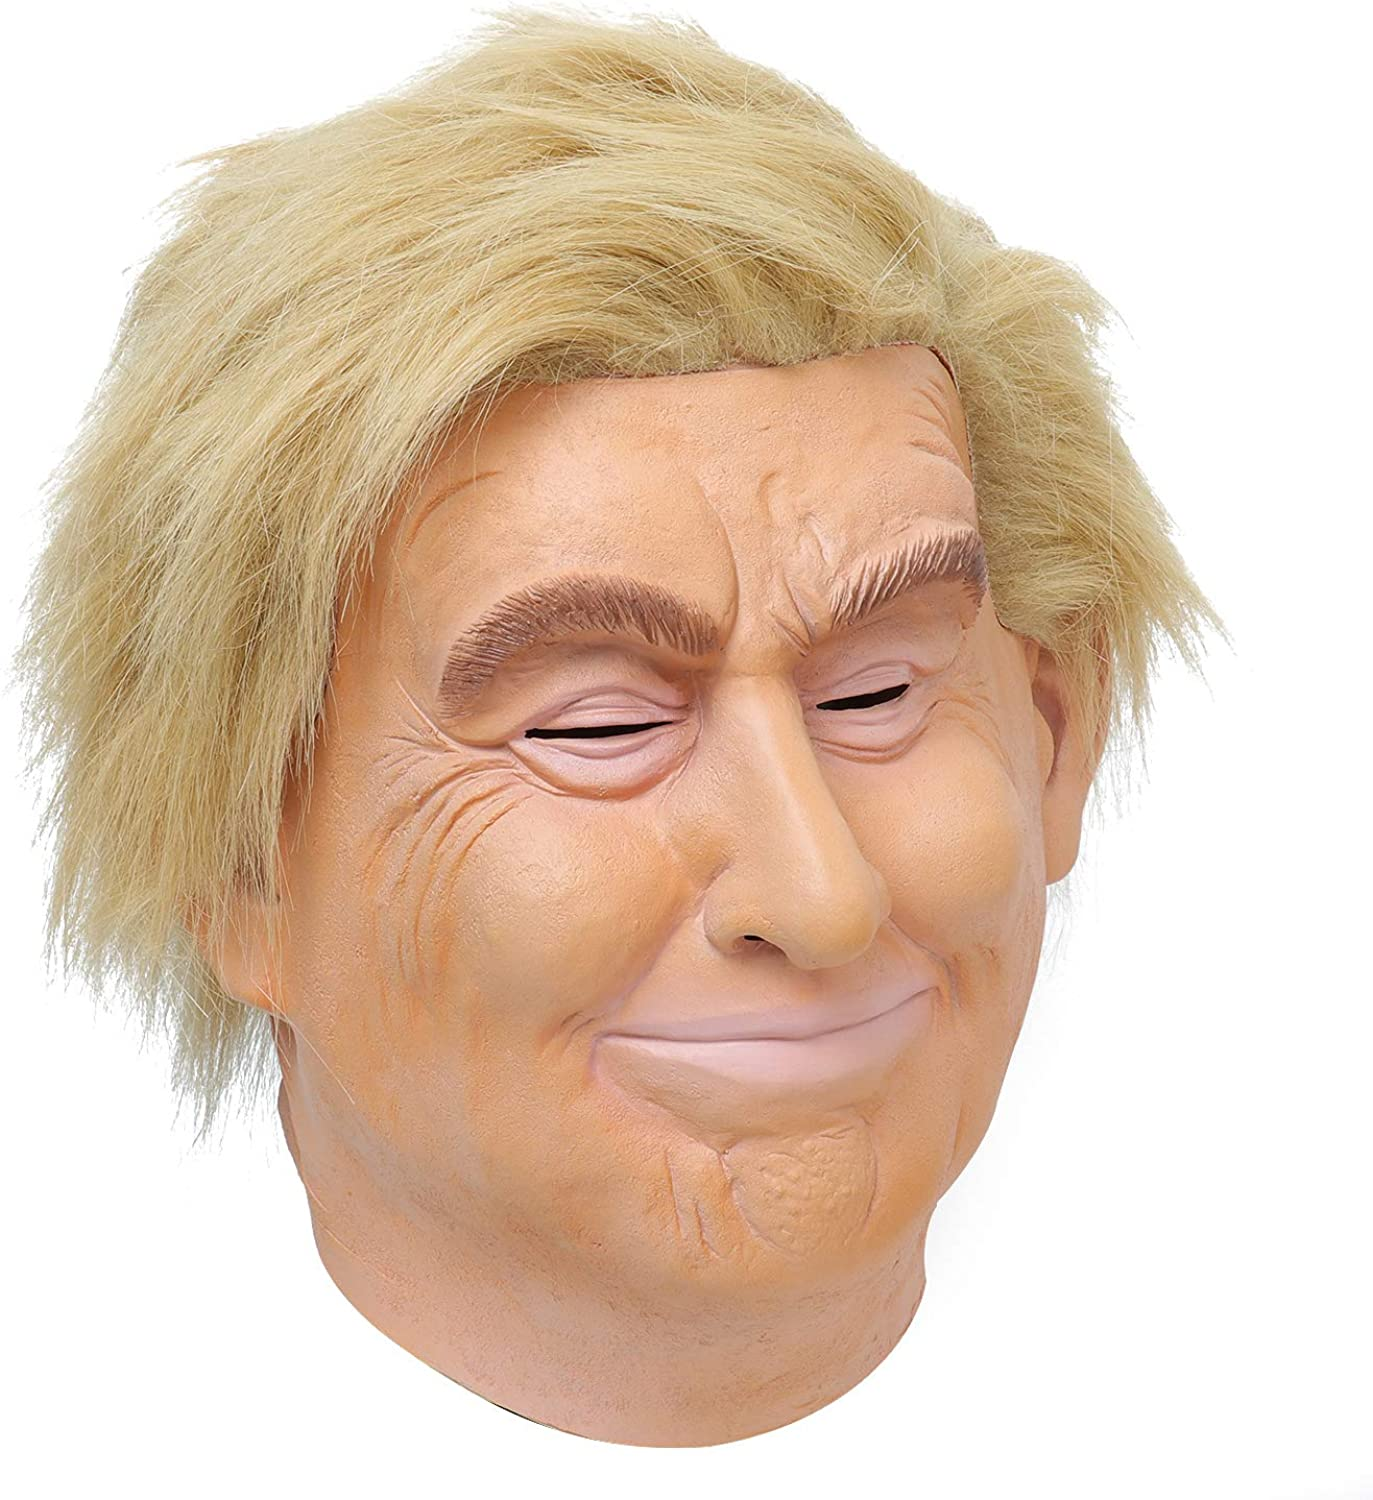 President Donald Trump Deluxe Latex Full Adult Halloween Mask Costume Accessory